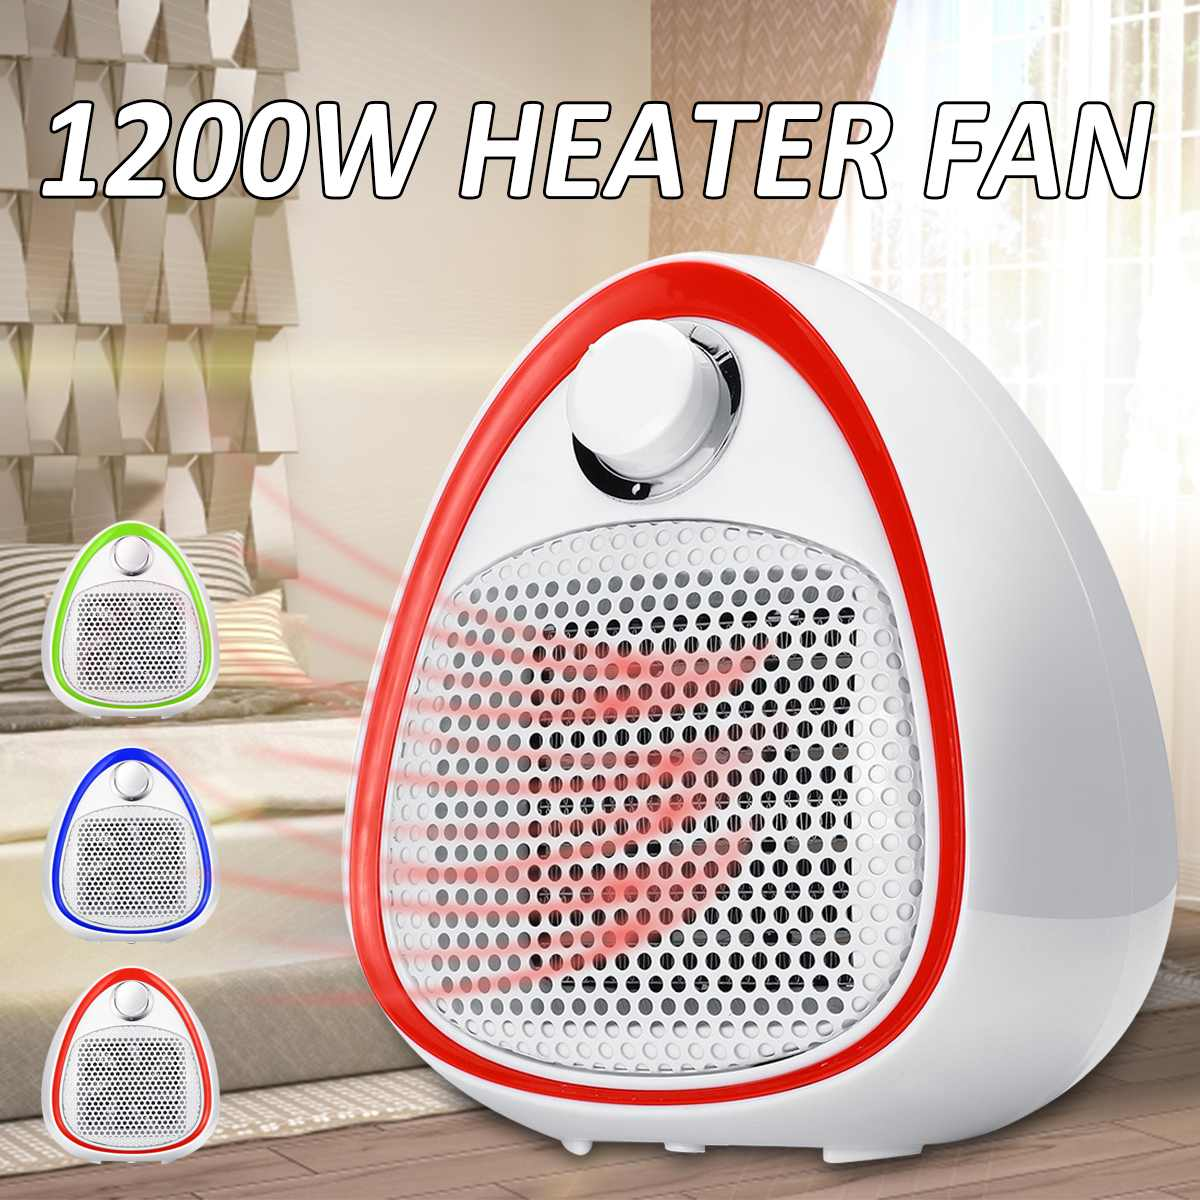 1200W Electric Space Heater Table Air Warmer Blower Mini PTC Ceramic Heating Fan Electrico Portable Handy Heaters Home Office цена